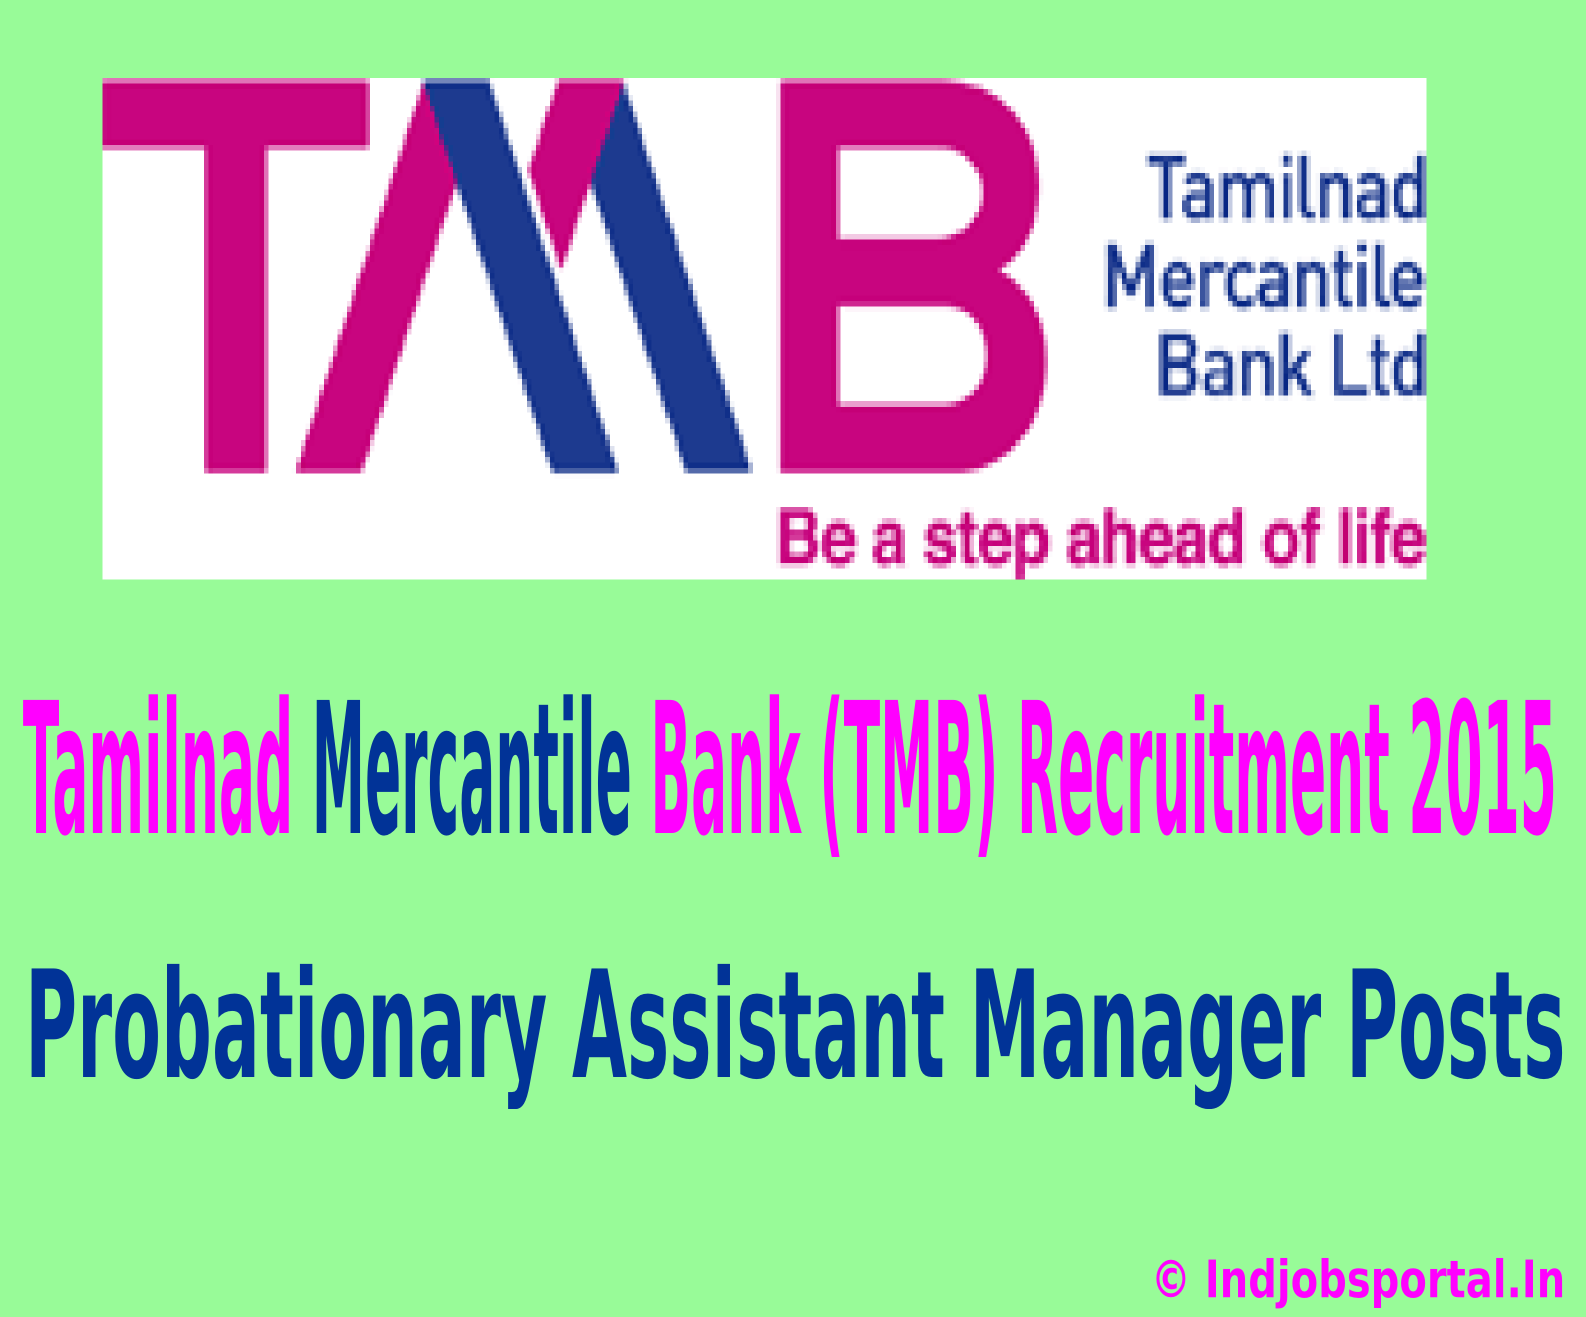 Tamilnad Mercantile Bank (TMB) Recruitment 2015 Apply Online For Probationary Assistant Manager Posts